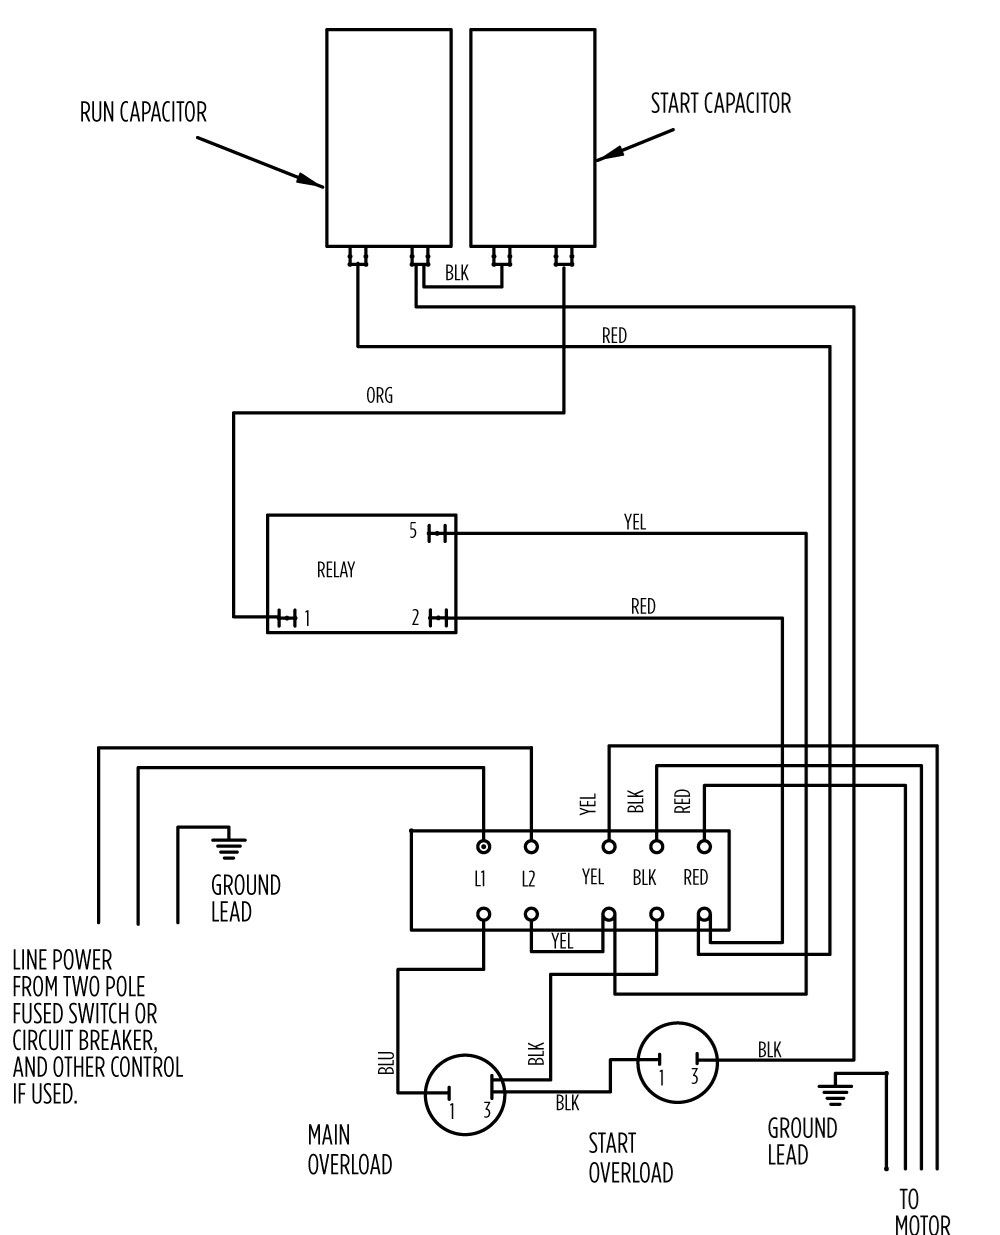 munro pump wiring diagram Collection-Water Pump Pressure Switch Wiring Diagram Awesome Submersible Well Pump Wiring Diagram & Submersible Well 13-c